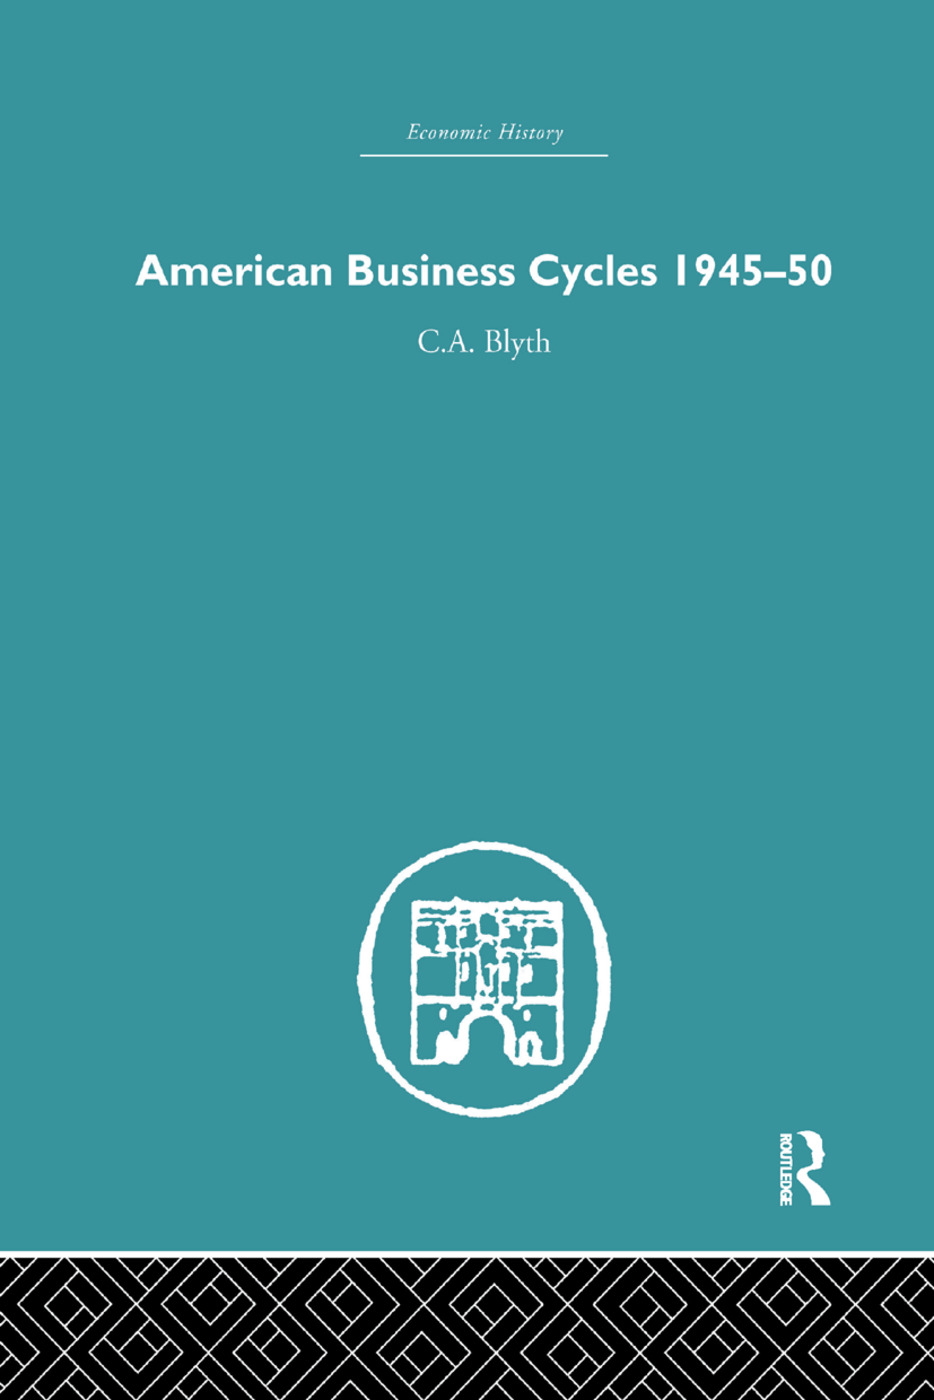 American Business Cycles 1945-50 book cover